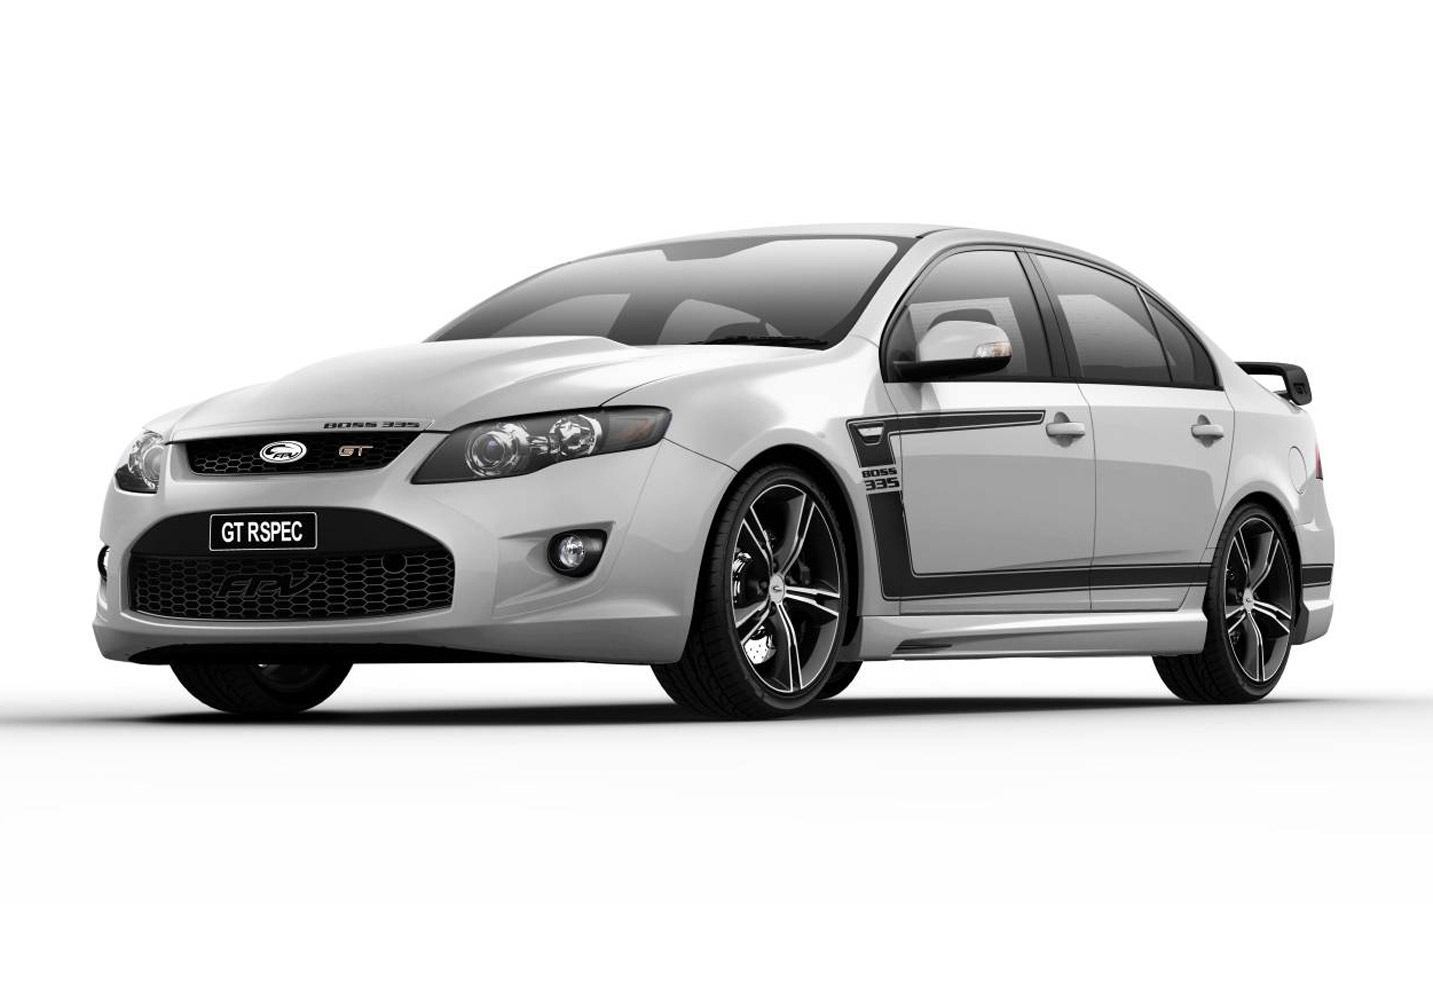 2008 - 2010 Ford FG Falcon FPV GT - Images, Specifications and ...